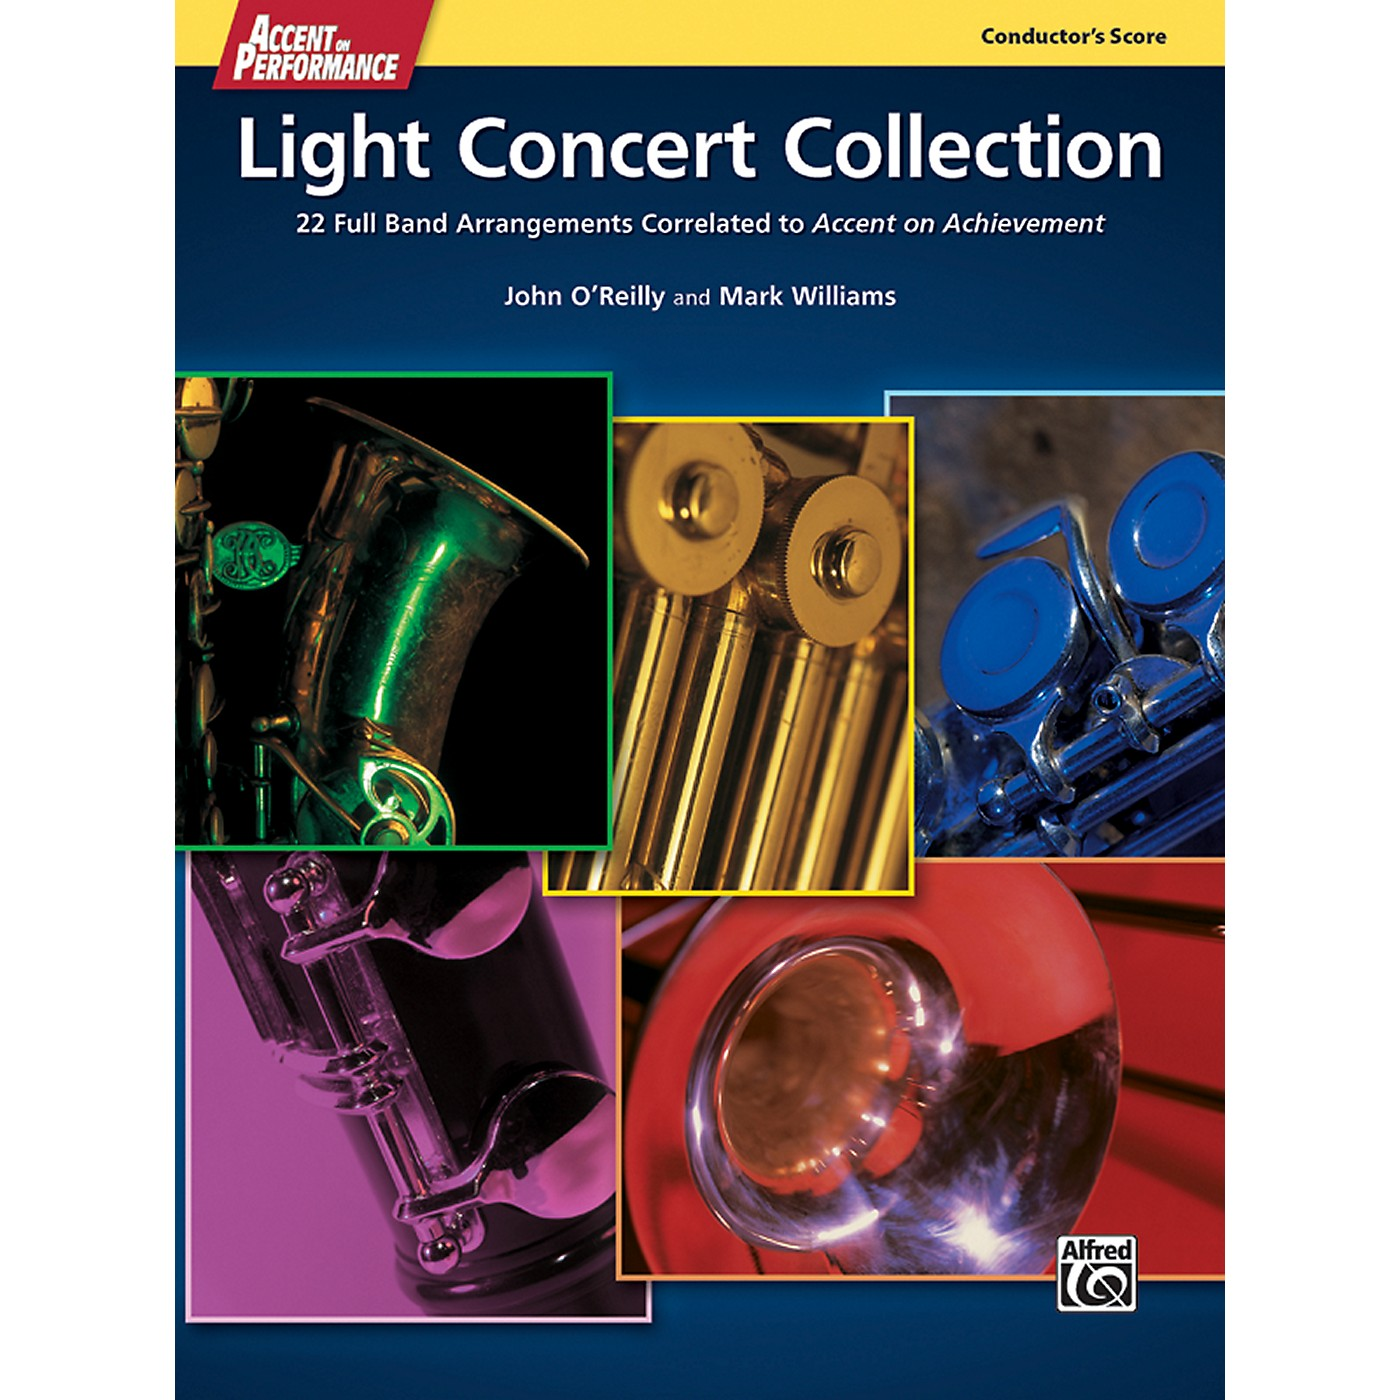 Alfred Accent on Performance Light Concert Collection Score Book thumbnail